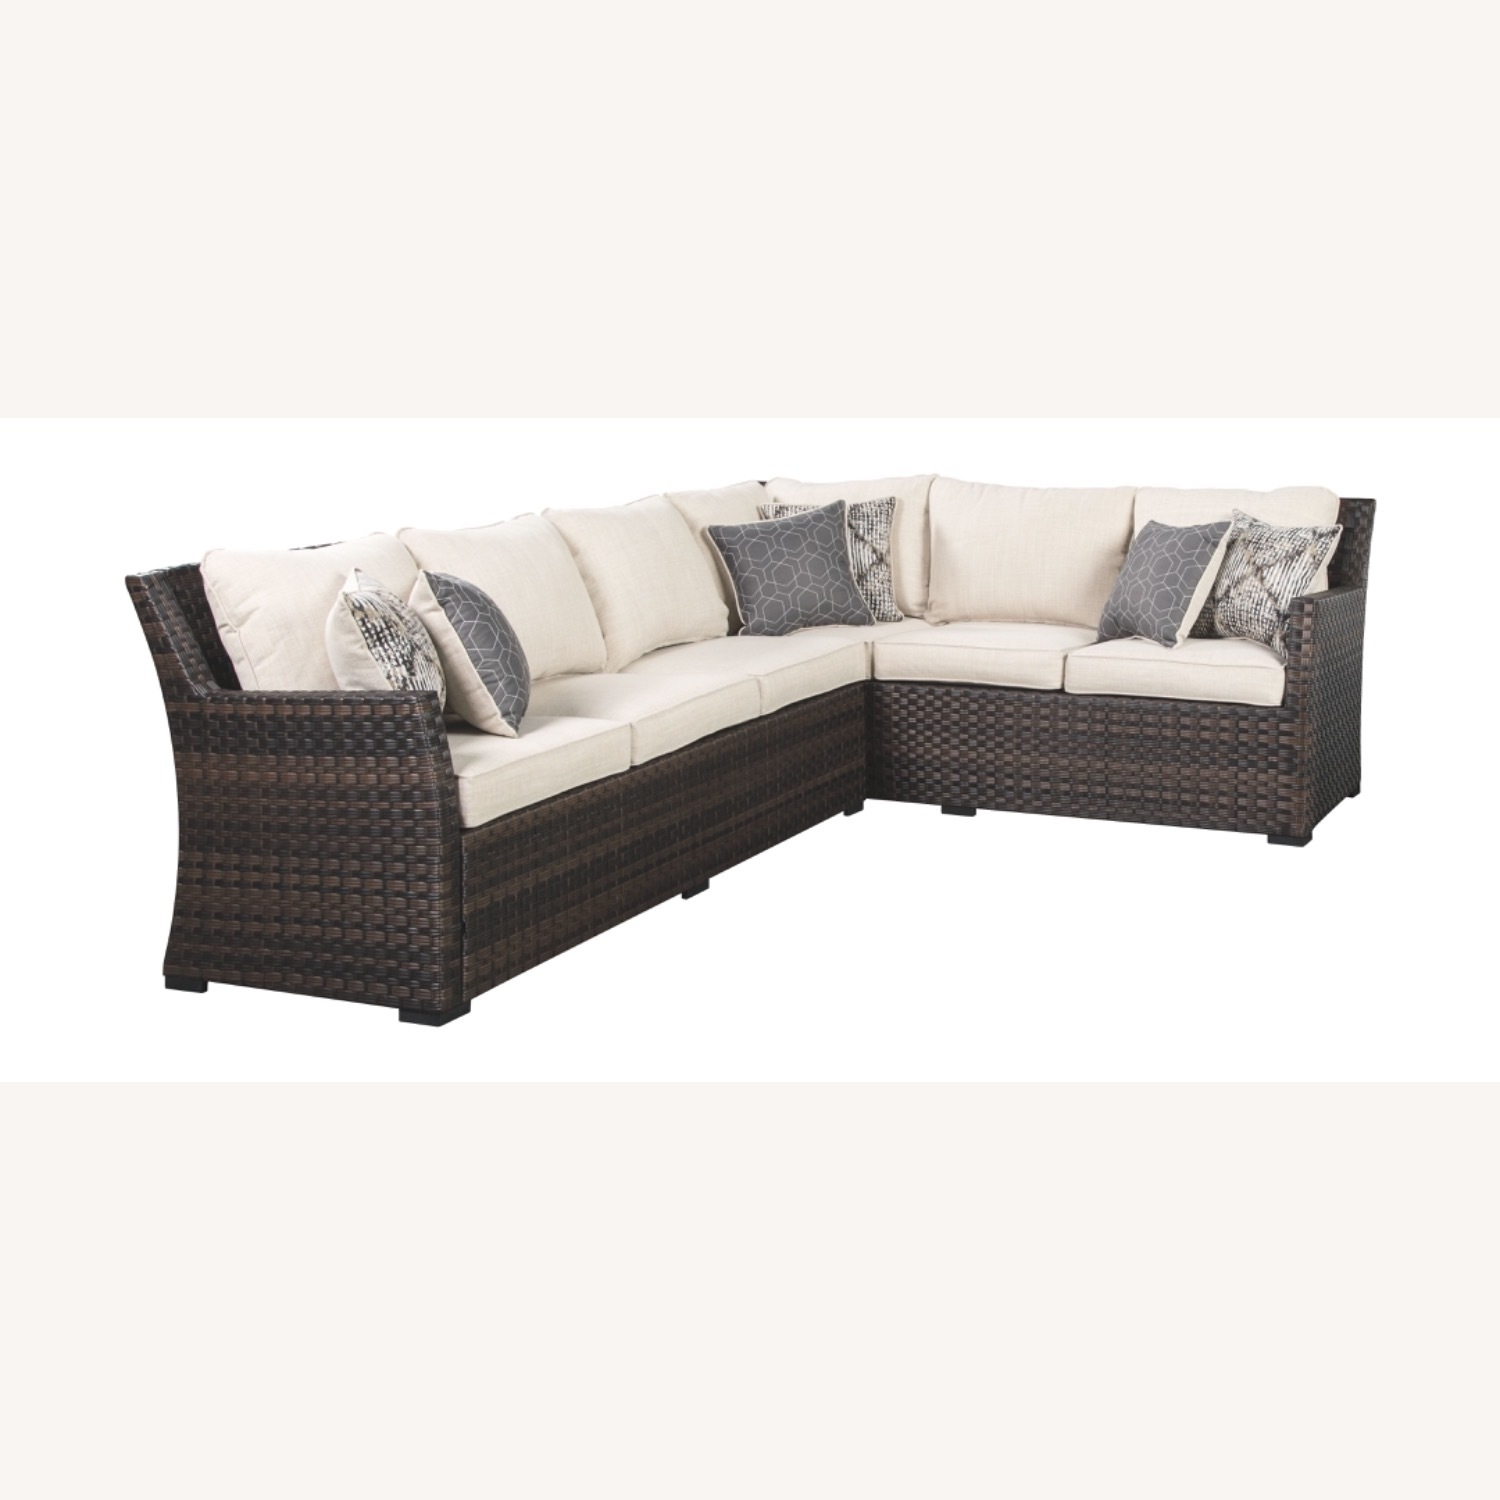 Ashley Furniture Resin Wicker Sectional - image-1